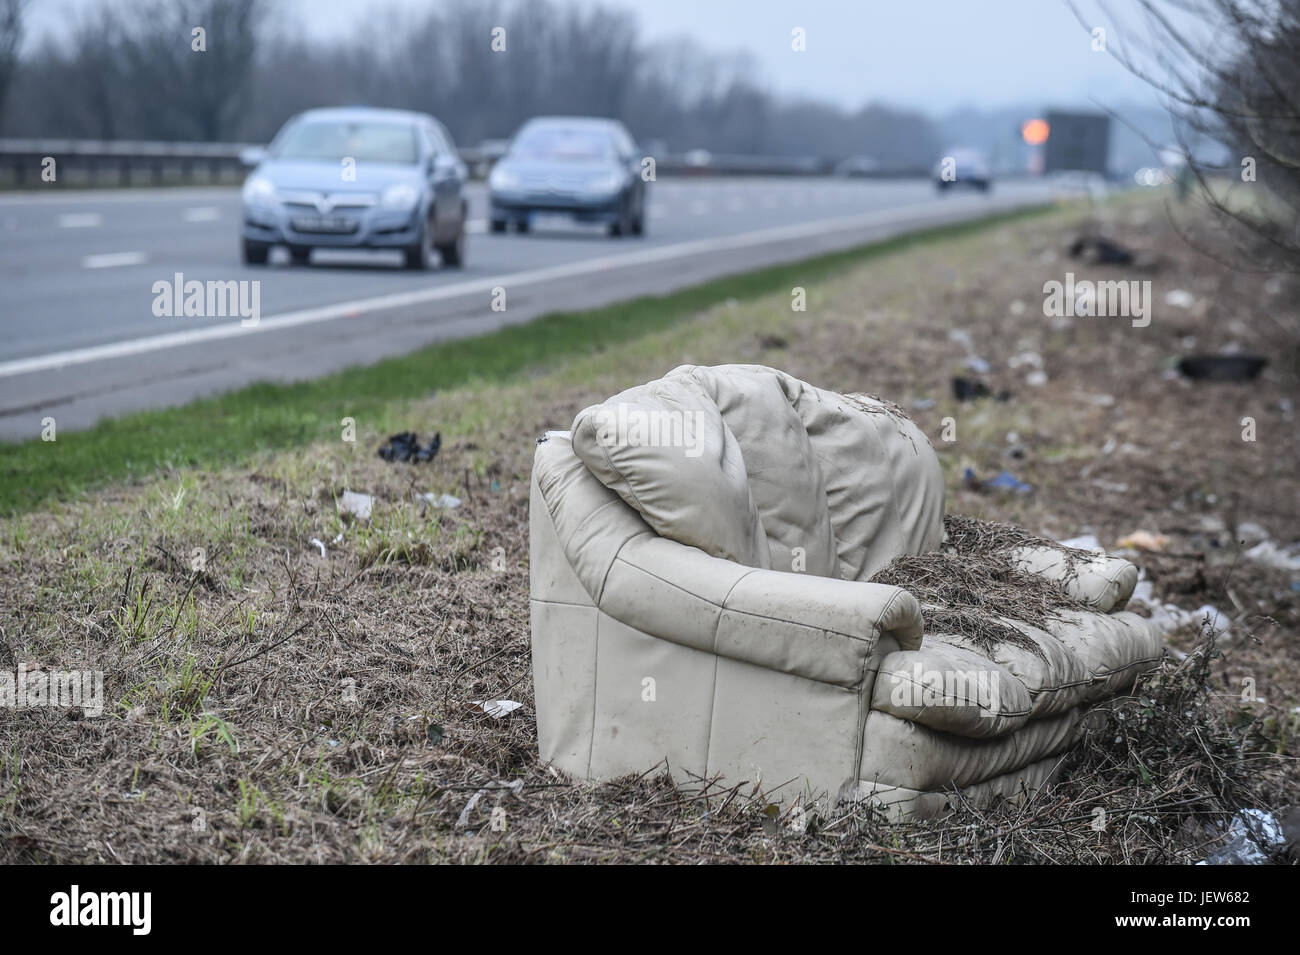 Copyrighted Image by Paul Slater/PSI - Dumped sofa on the side of the A38, Devon. - Stock Image